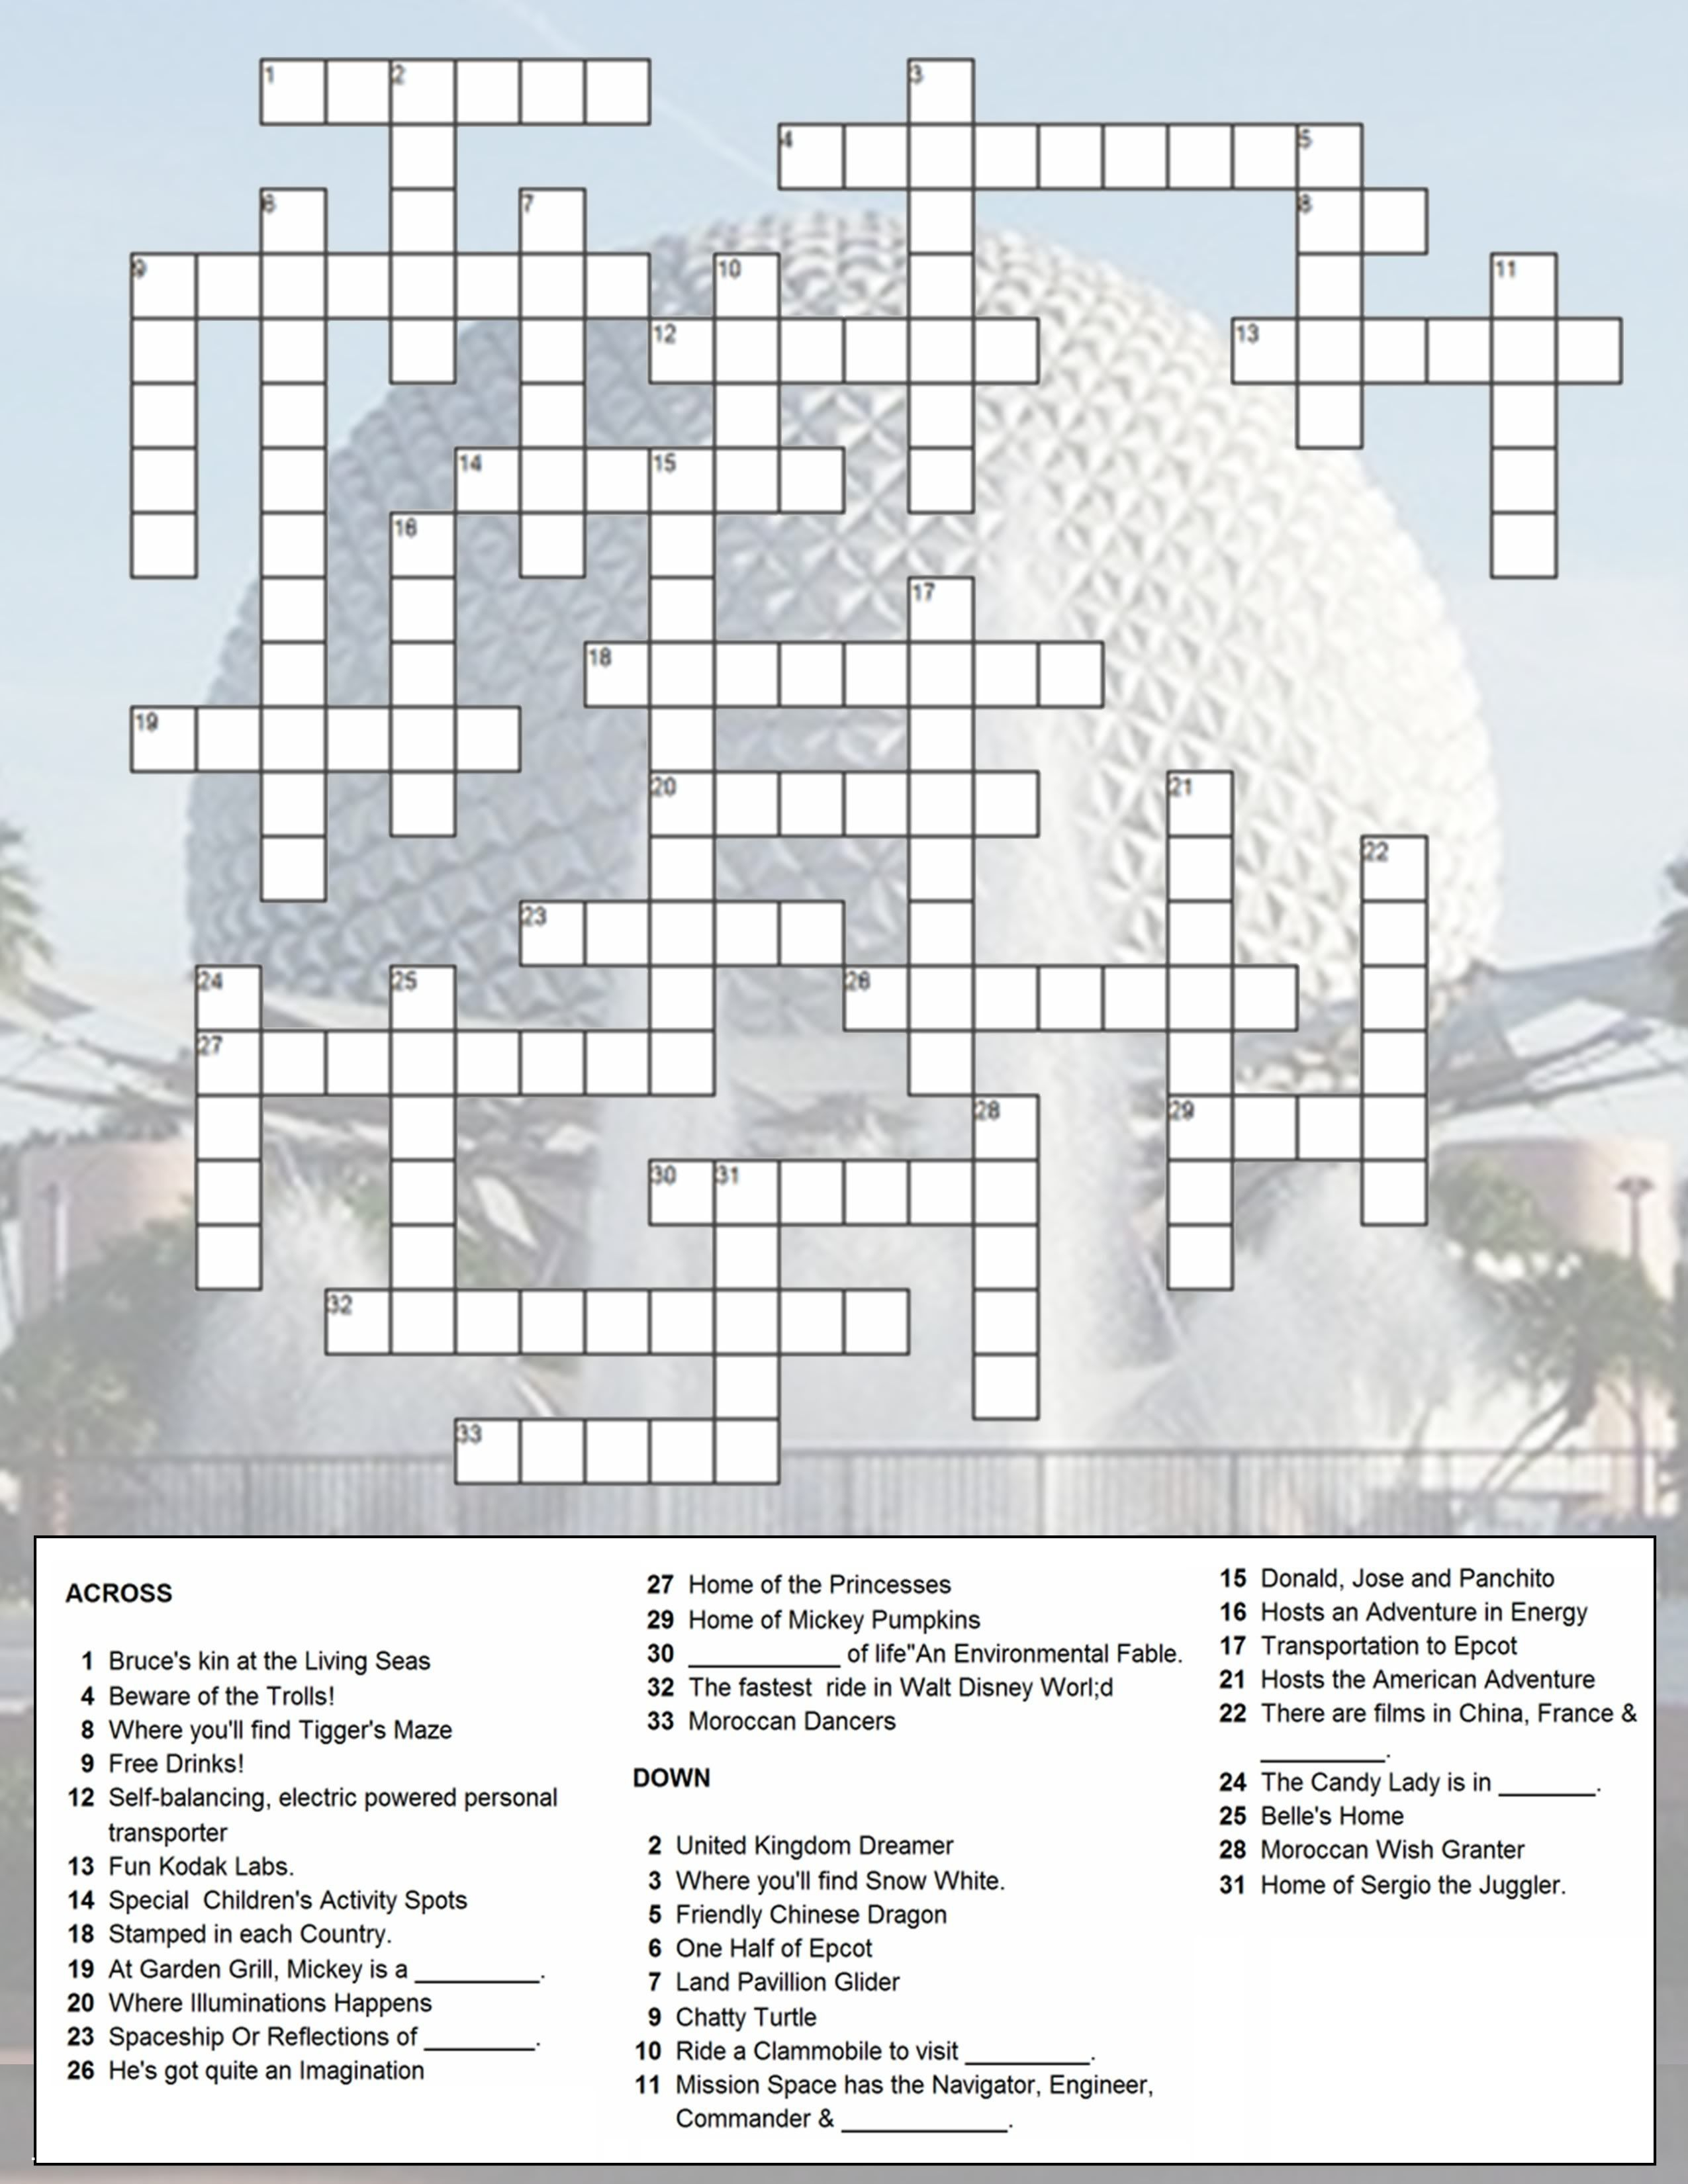 Epcot Crossword Puzzle | Just Because You Have A Fast Passdoesn't - Crossword Puzzle Printable Disney